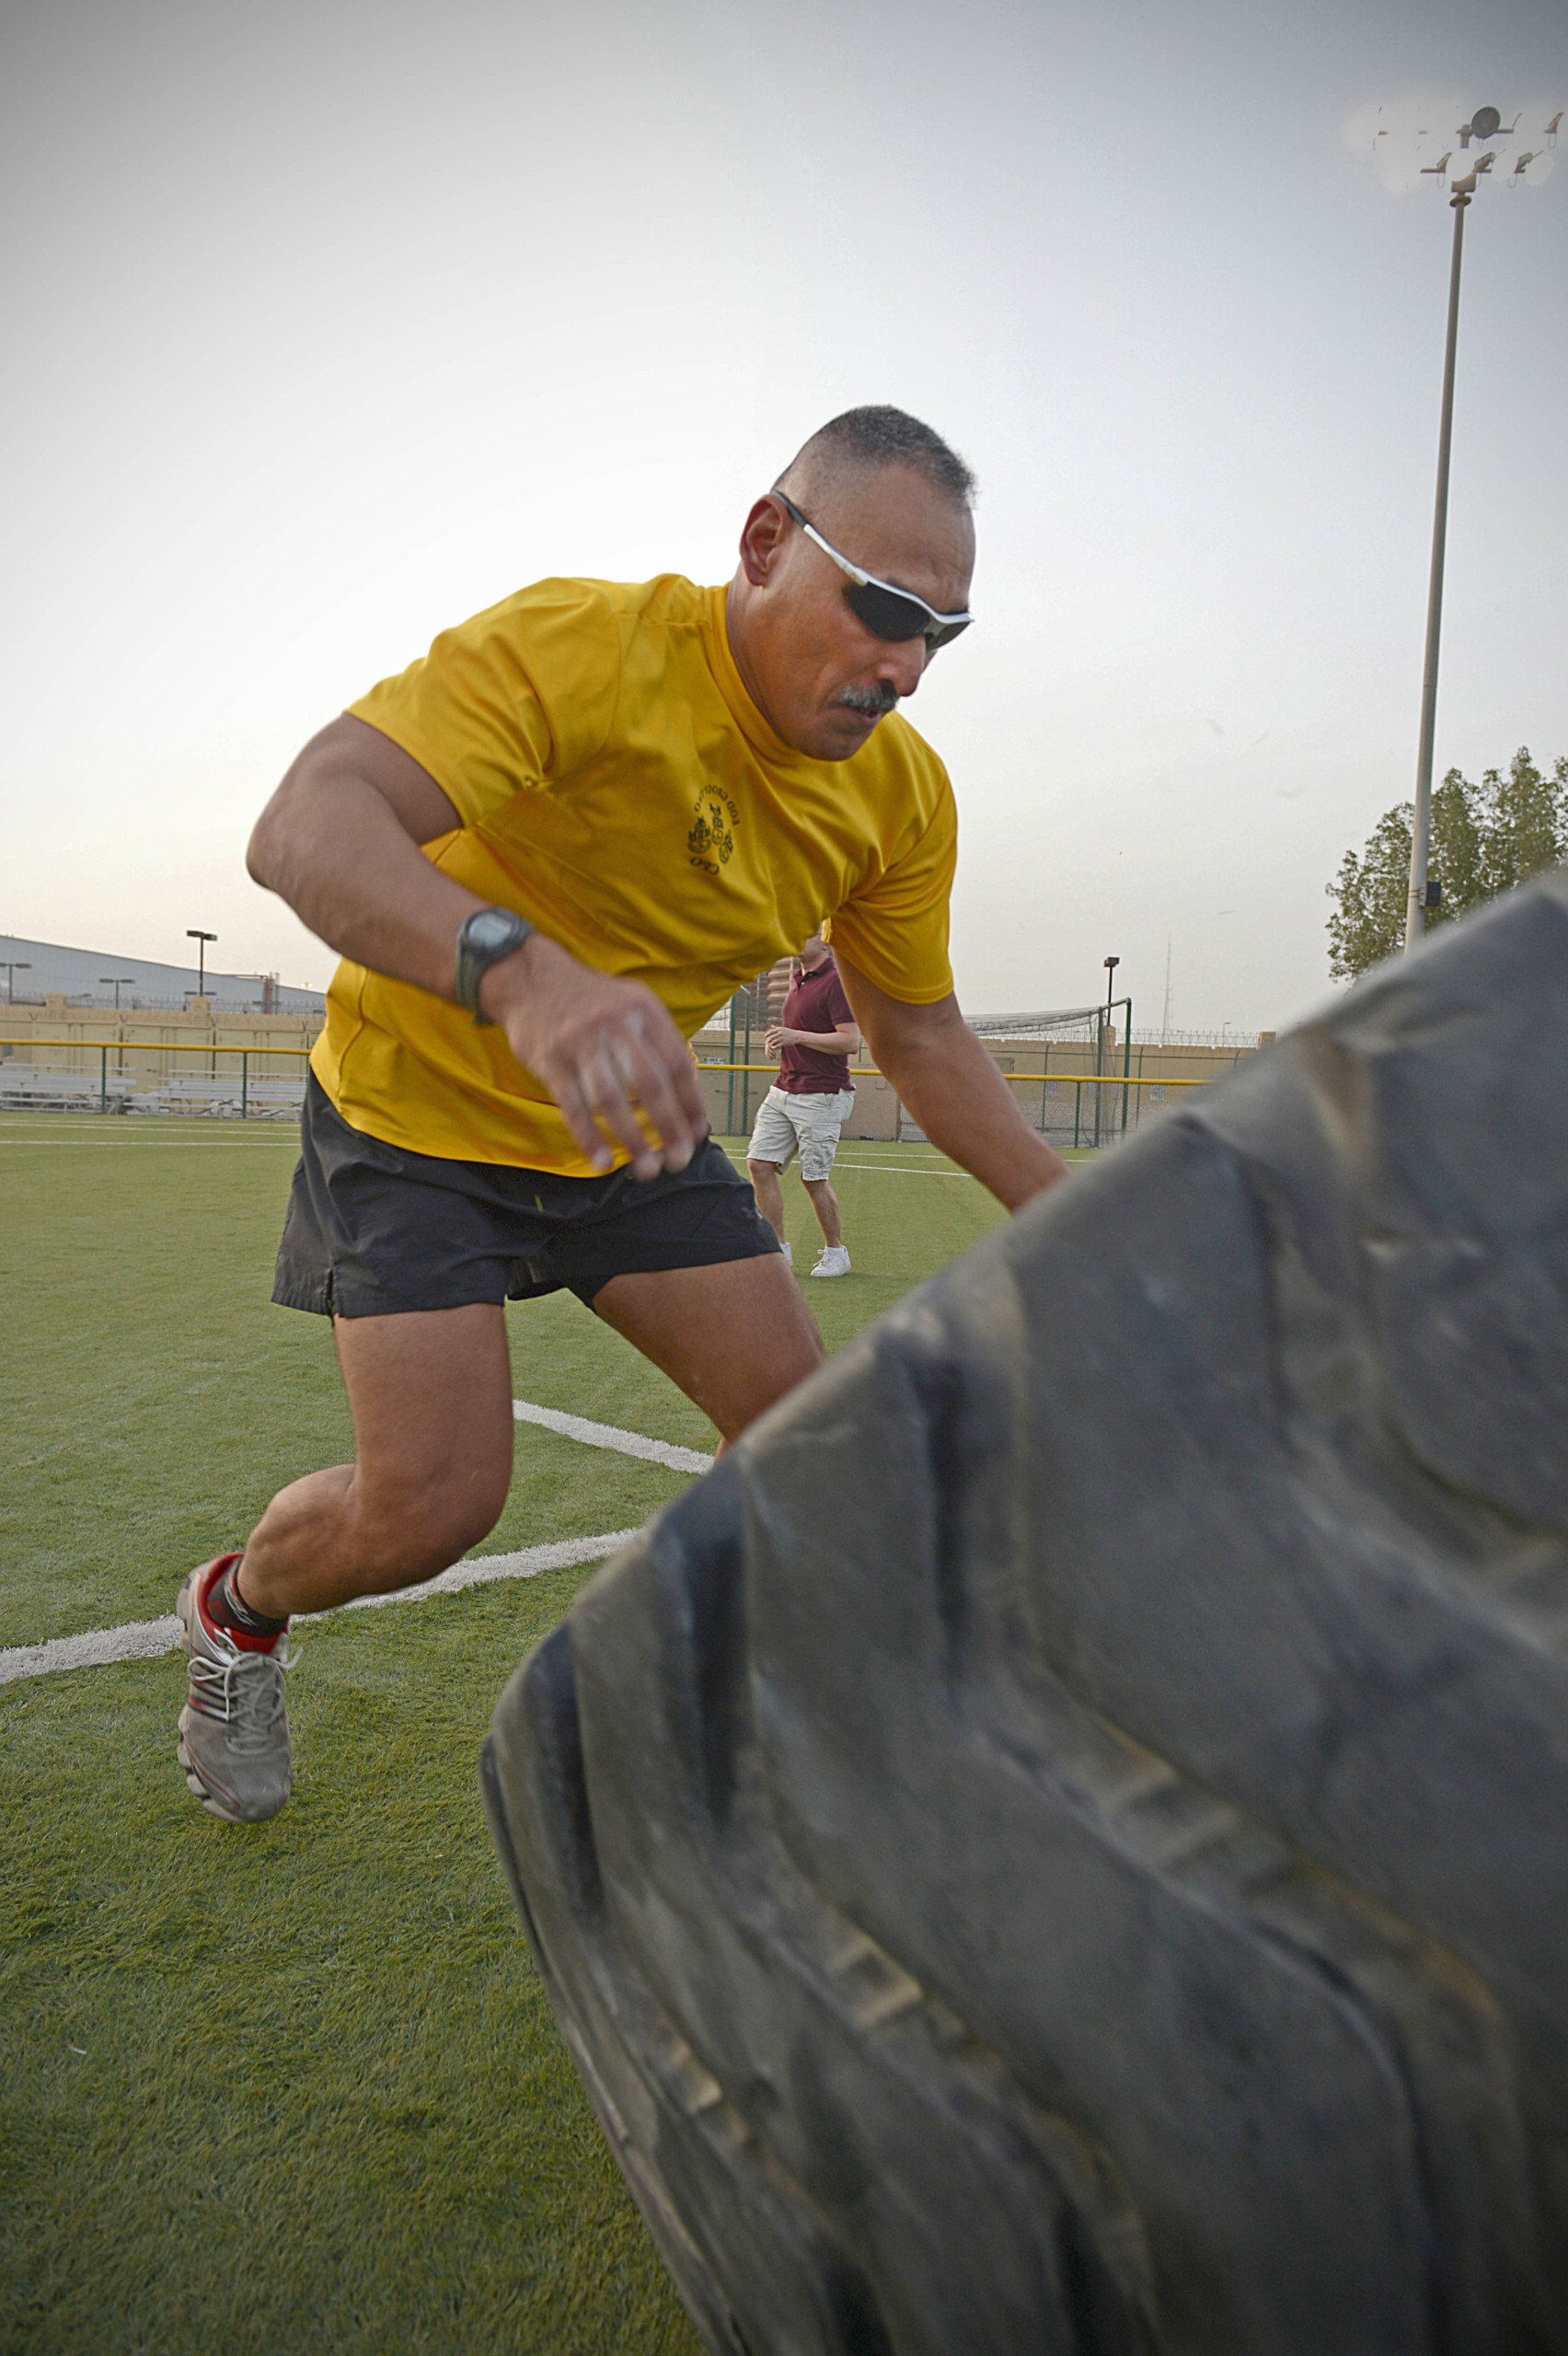 Can Strong Be Unhealthy? Or is Weak Unhealthy?